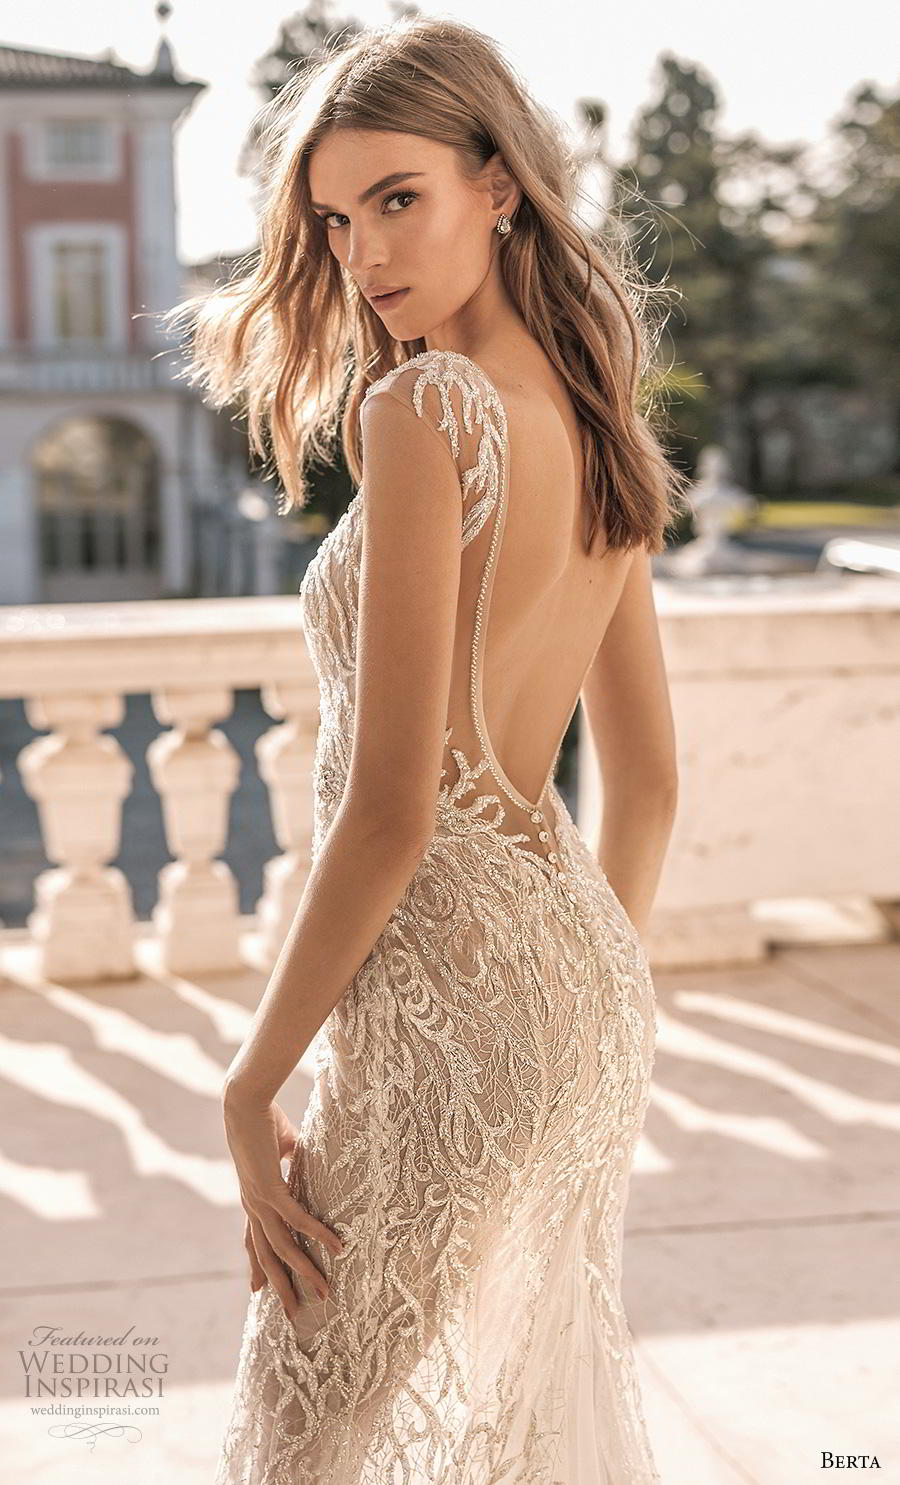 berta 2019 privee bridal cap sleeves deep v neck full embellishment sexy glamorous modified a  line wedding dress low open back backless chapel train (7) zbv